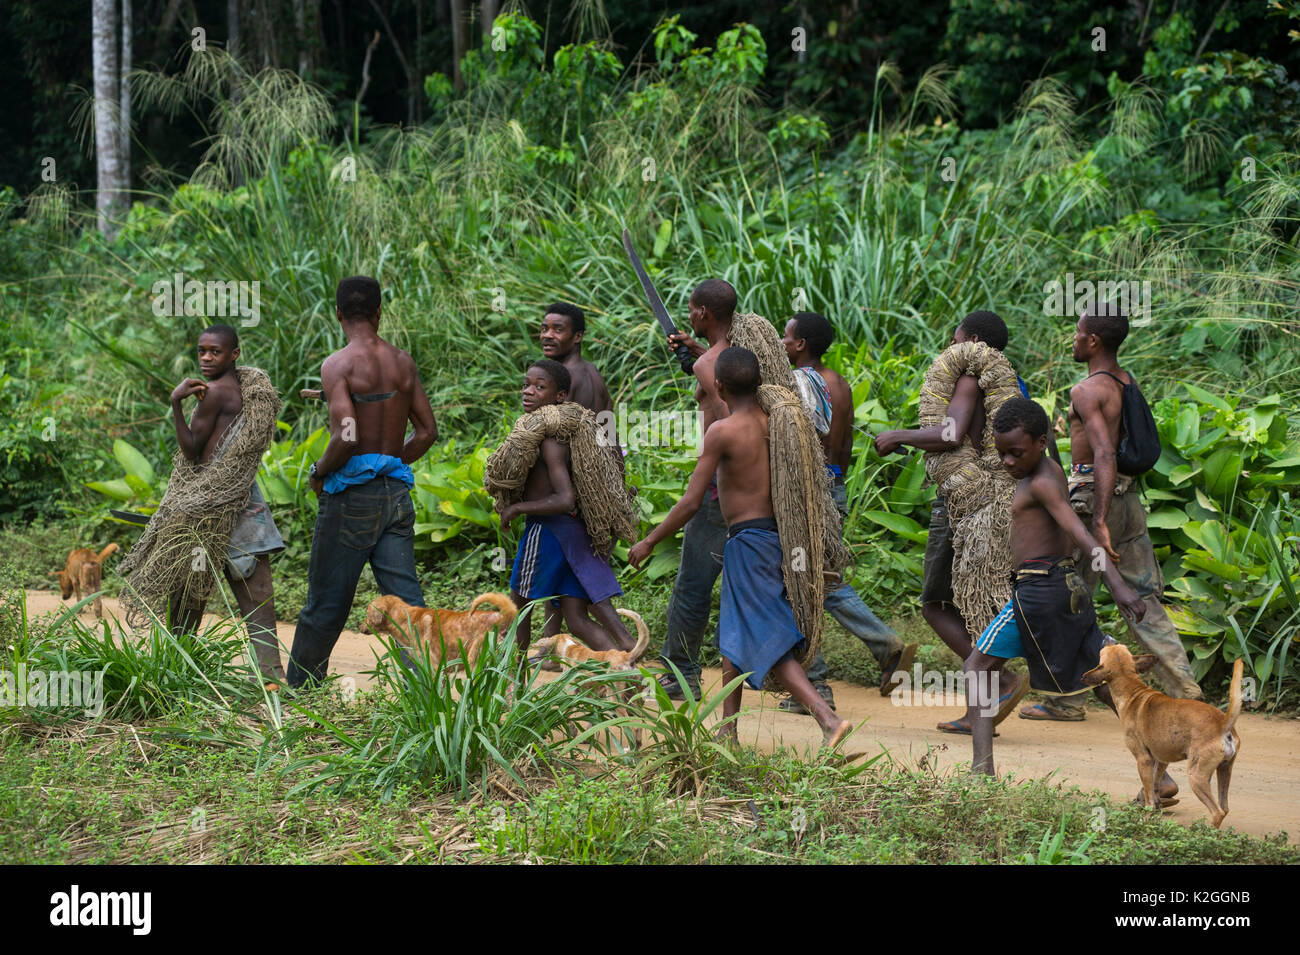 There is always something new coming out of africa. Pygmies Congo High Resolution Stock Photography And Images Alamy